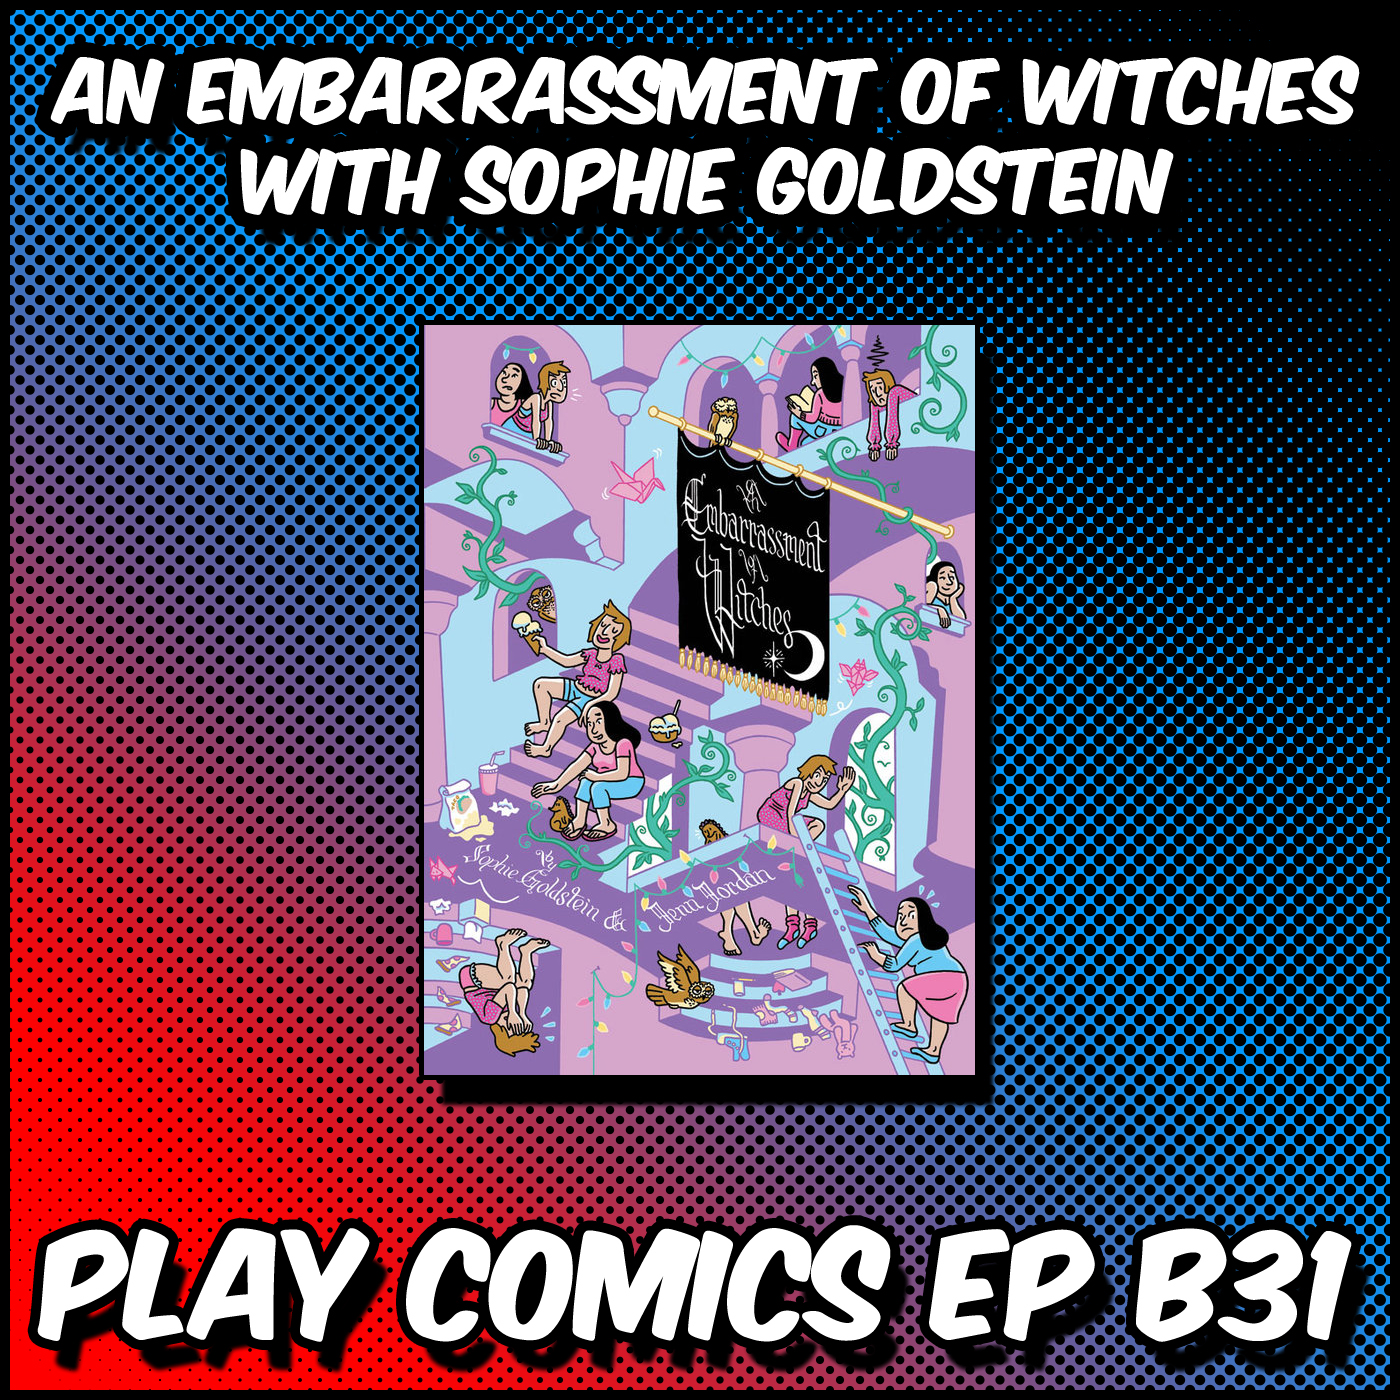 An Embarrassment of Witches with Sophie Goldstein